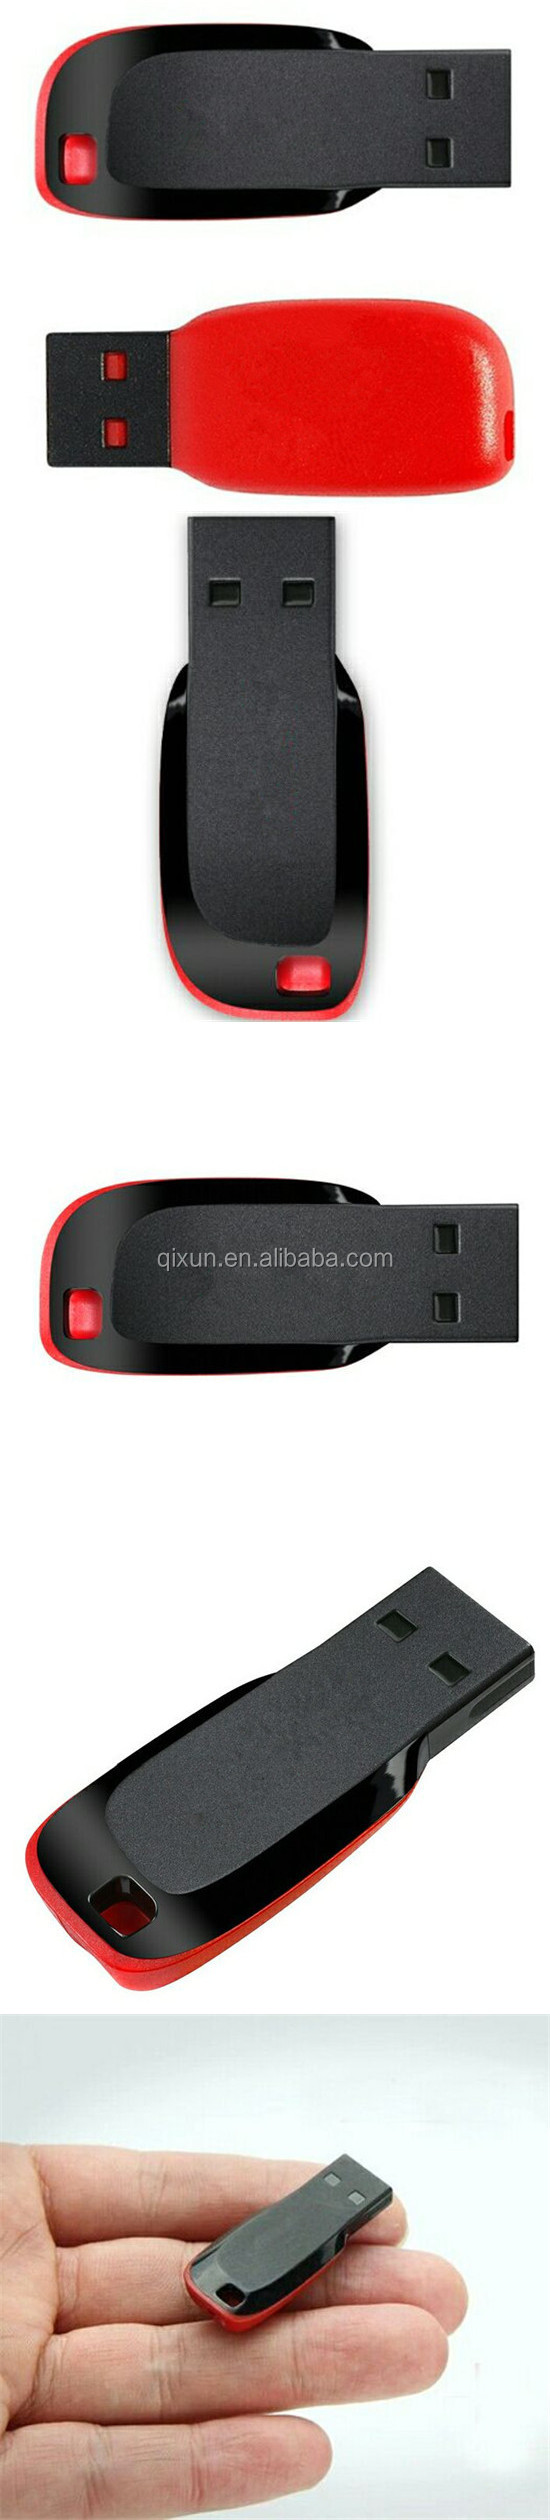 assurance order paypal accept 8gb plastic usb flash drive